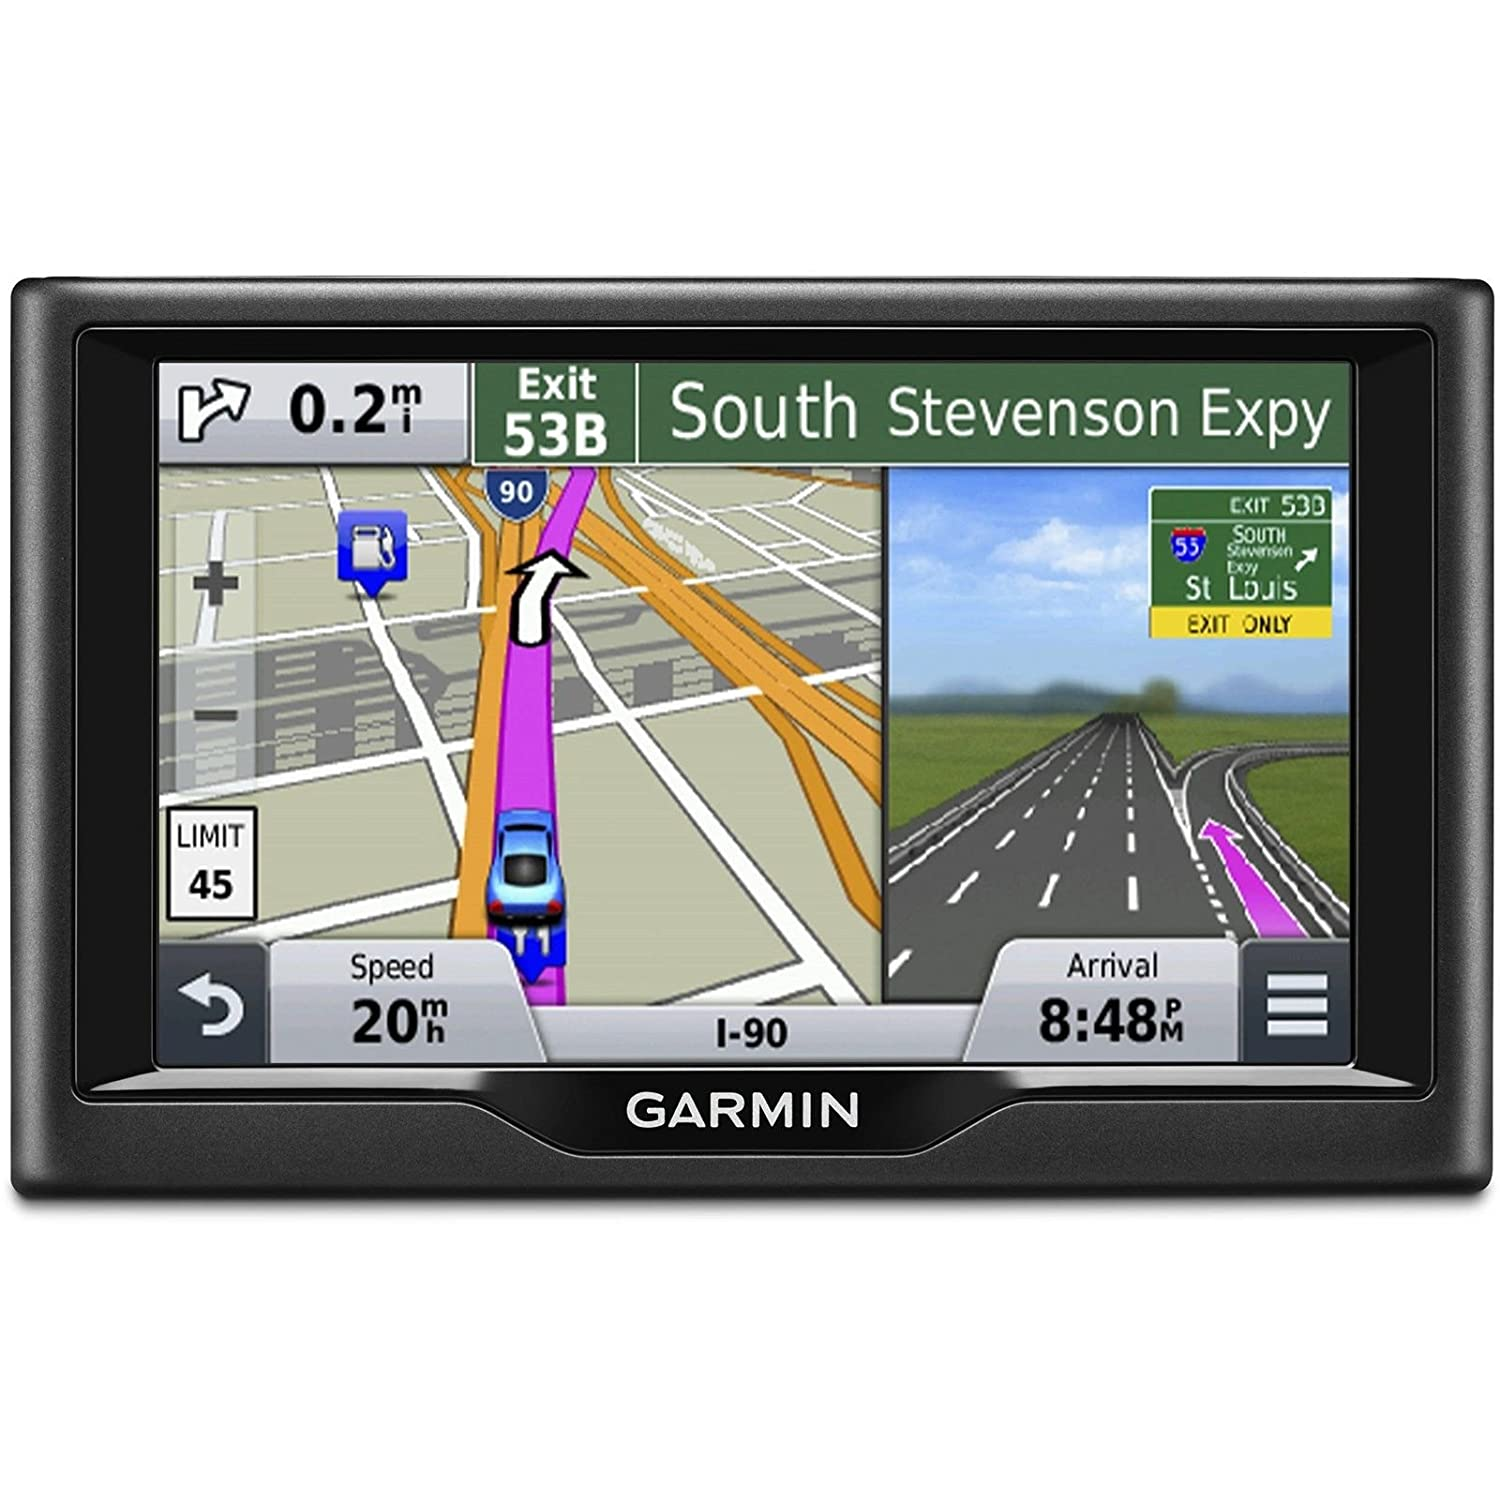 Garmin Nuvi 58lm 5 Inch Gps Navigator Us And Canada Maps Arb Intensity Led Light Wiring Kit Arb3500520 Certified Refurbished